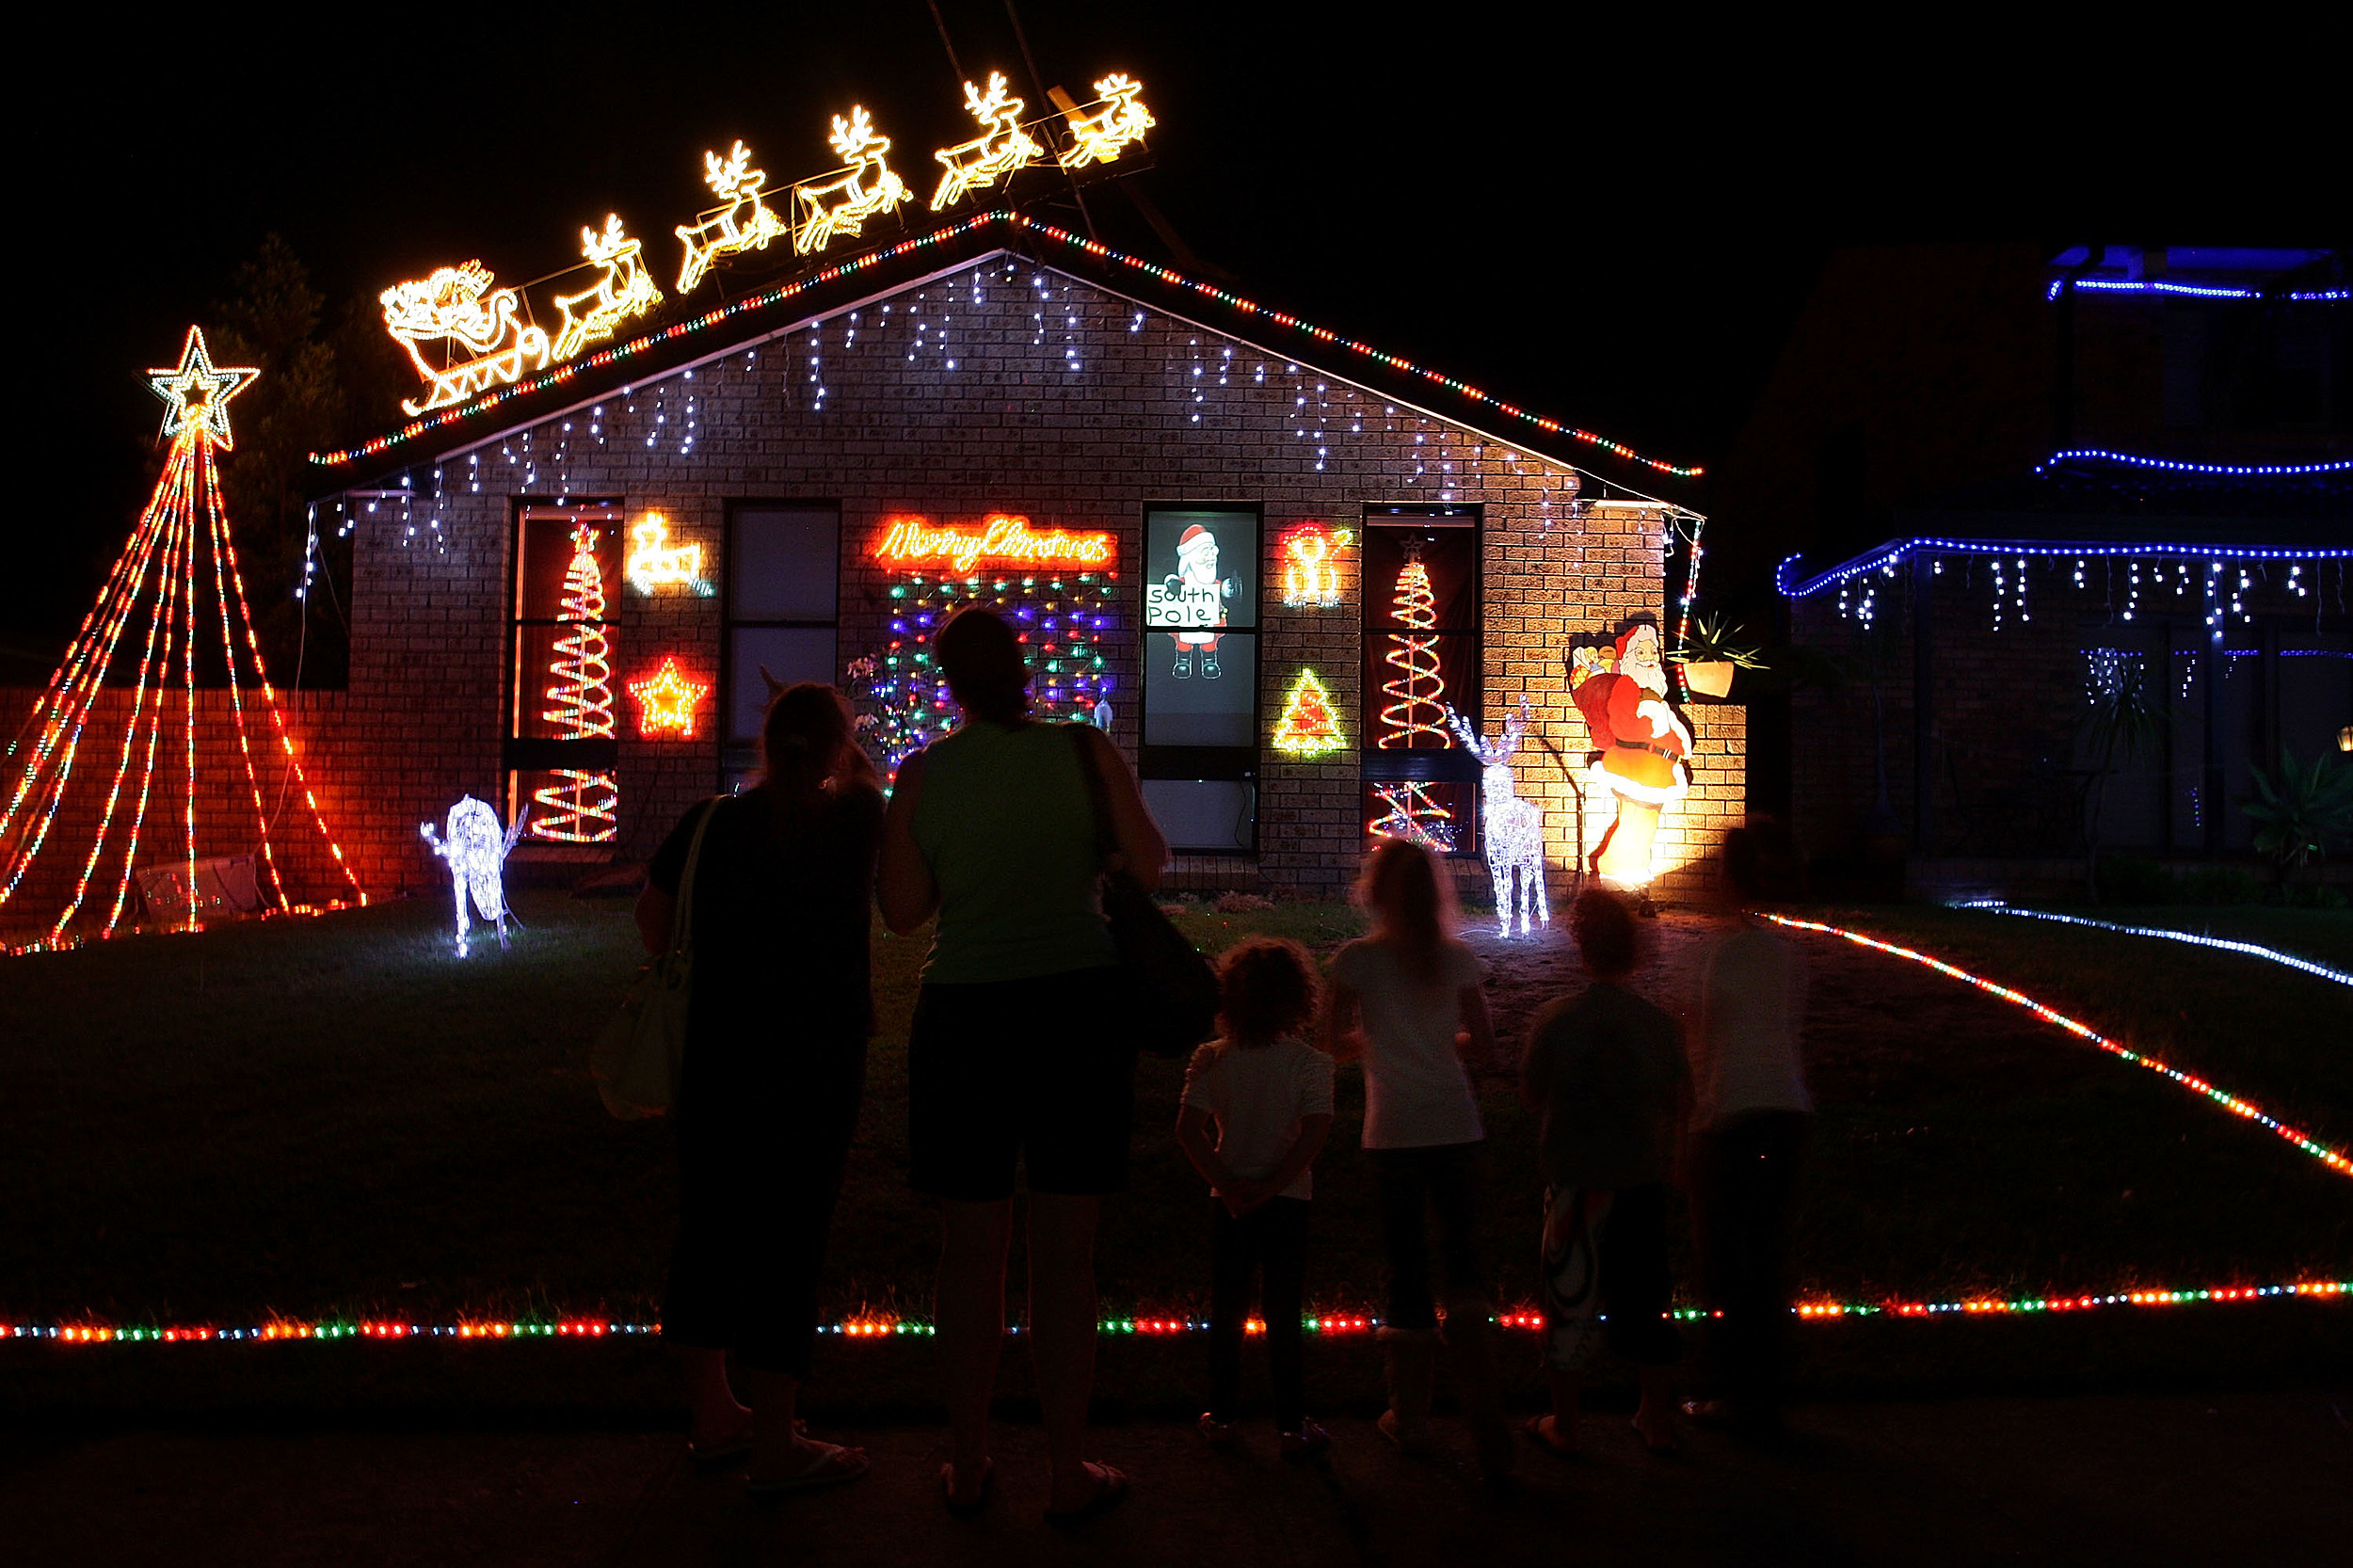 places to see christmas lights in lubbock our top 5 - Home Christmas Lights